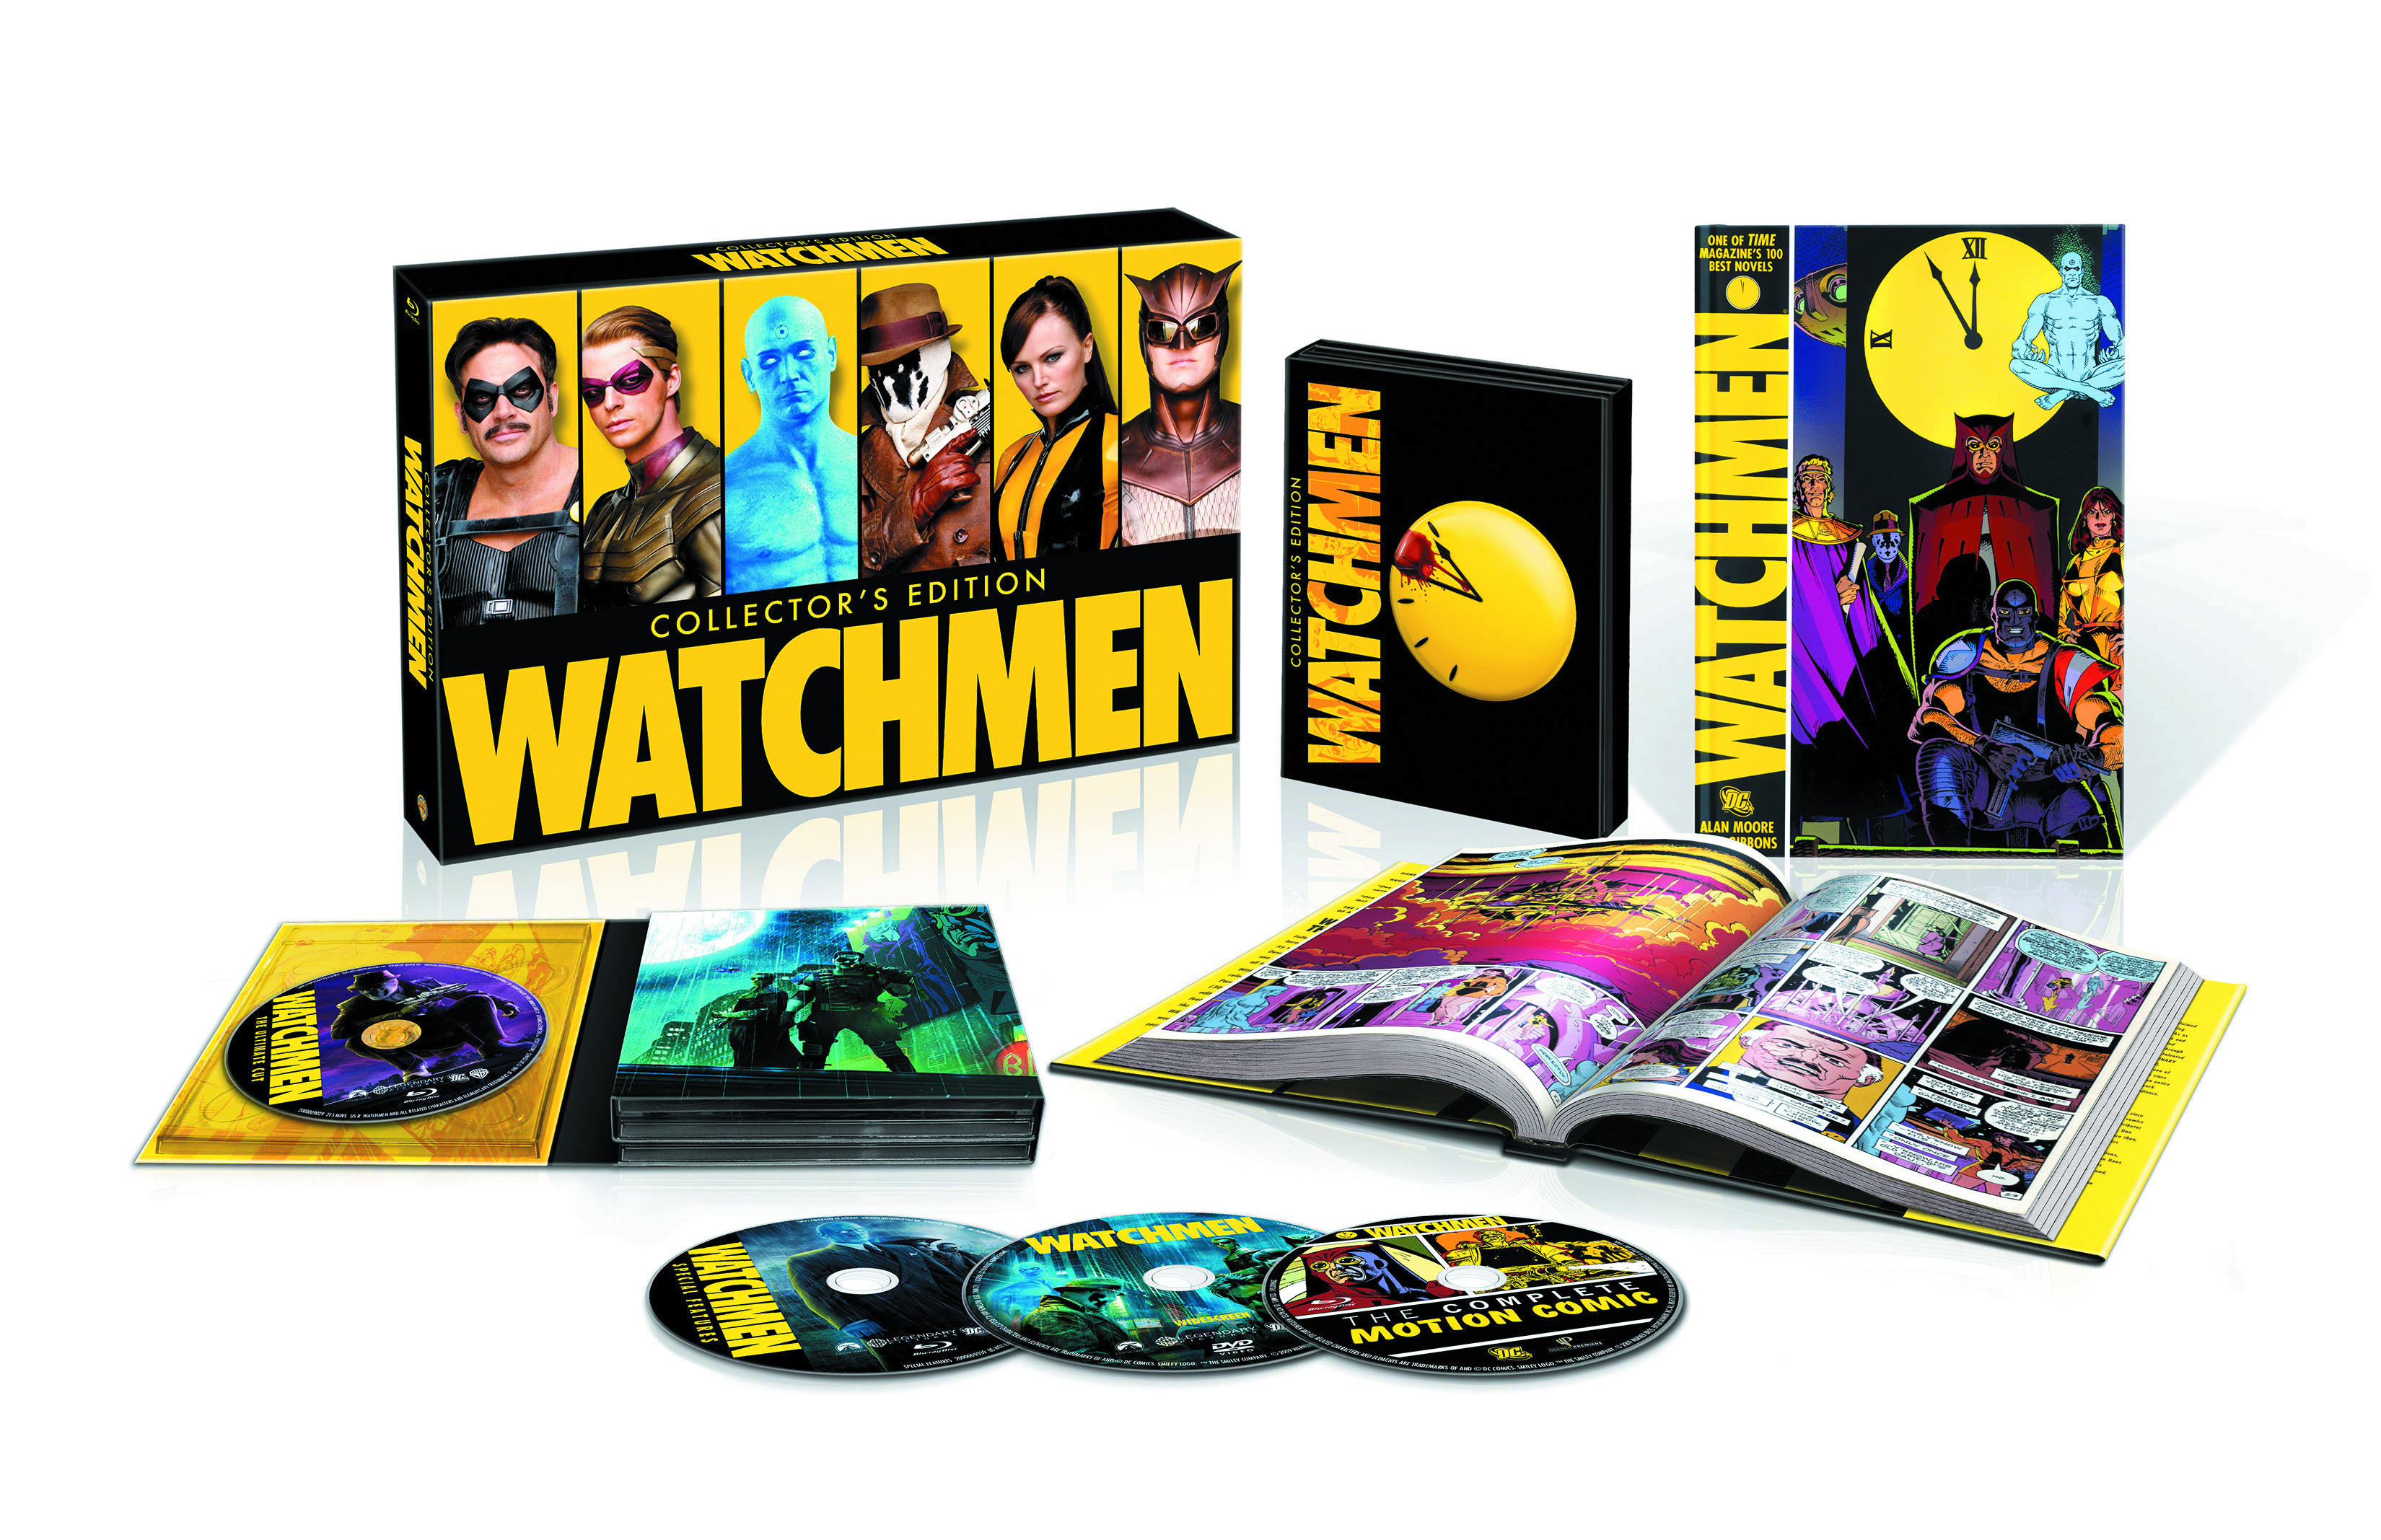 WATCHMEN ULTIMATE CUT BD + DVD + GRAPHIC NOVEL